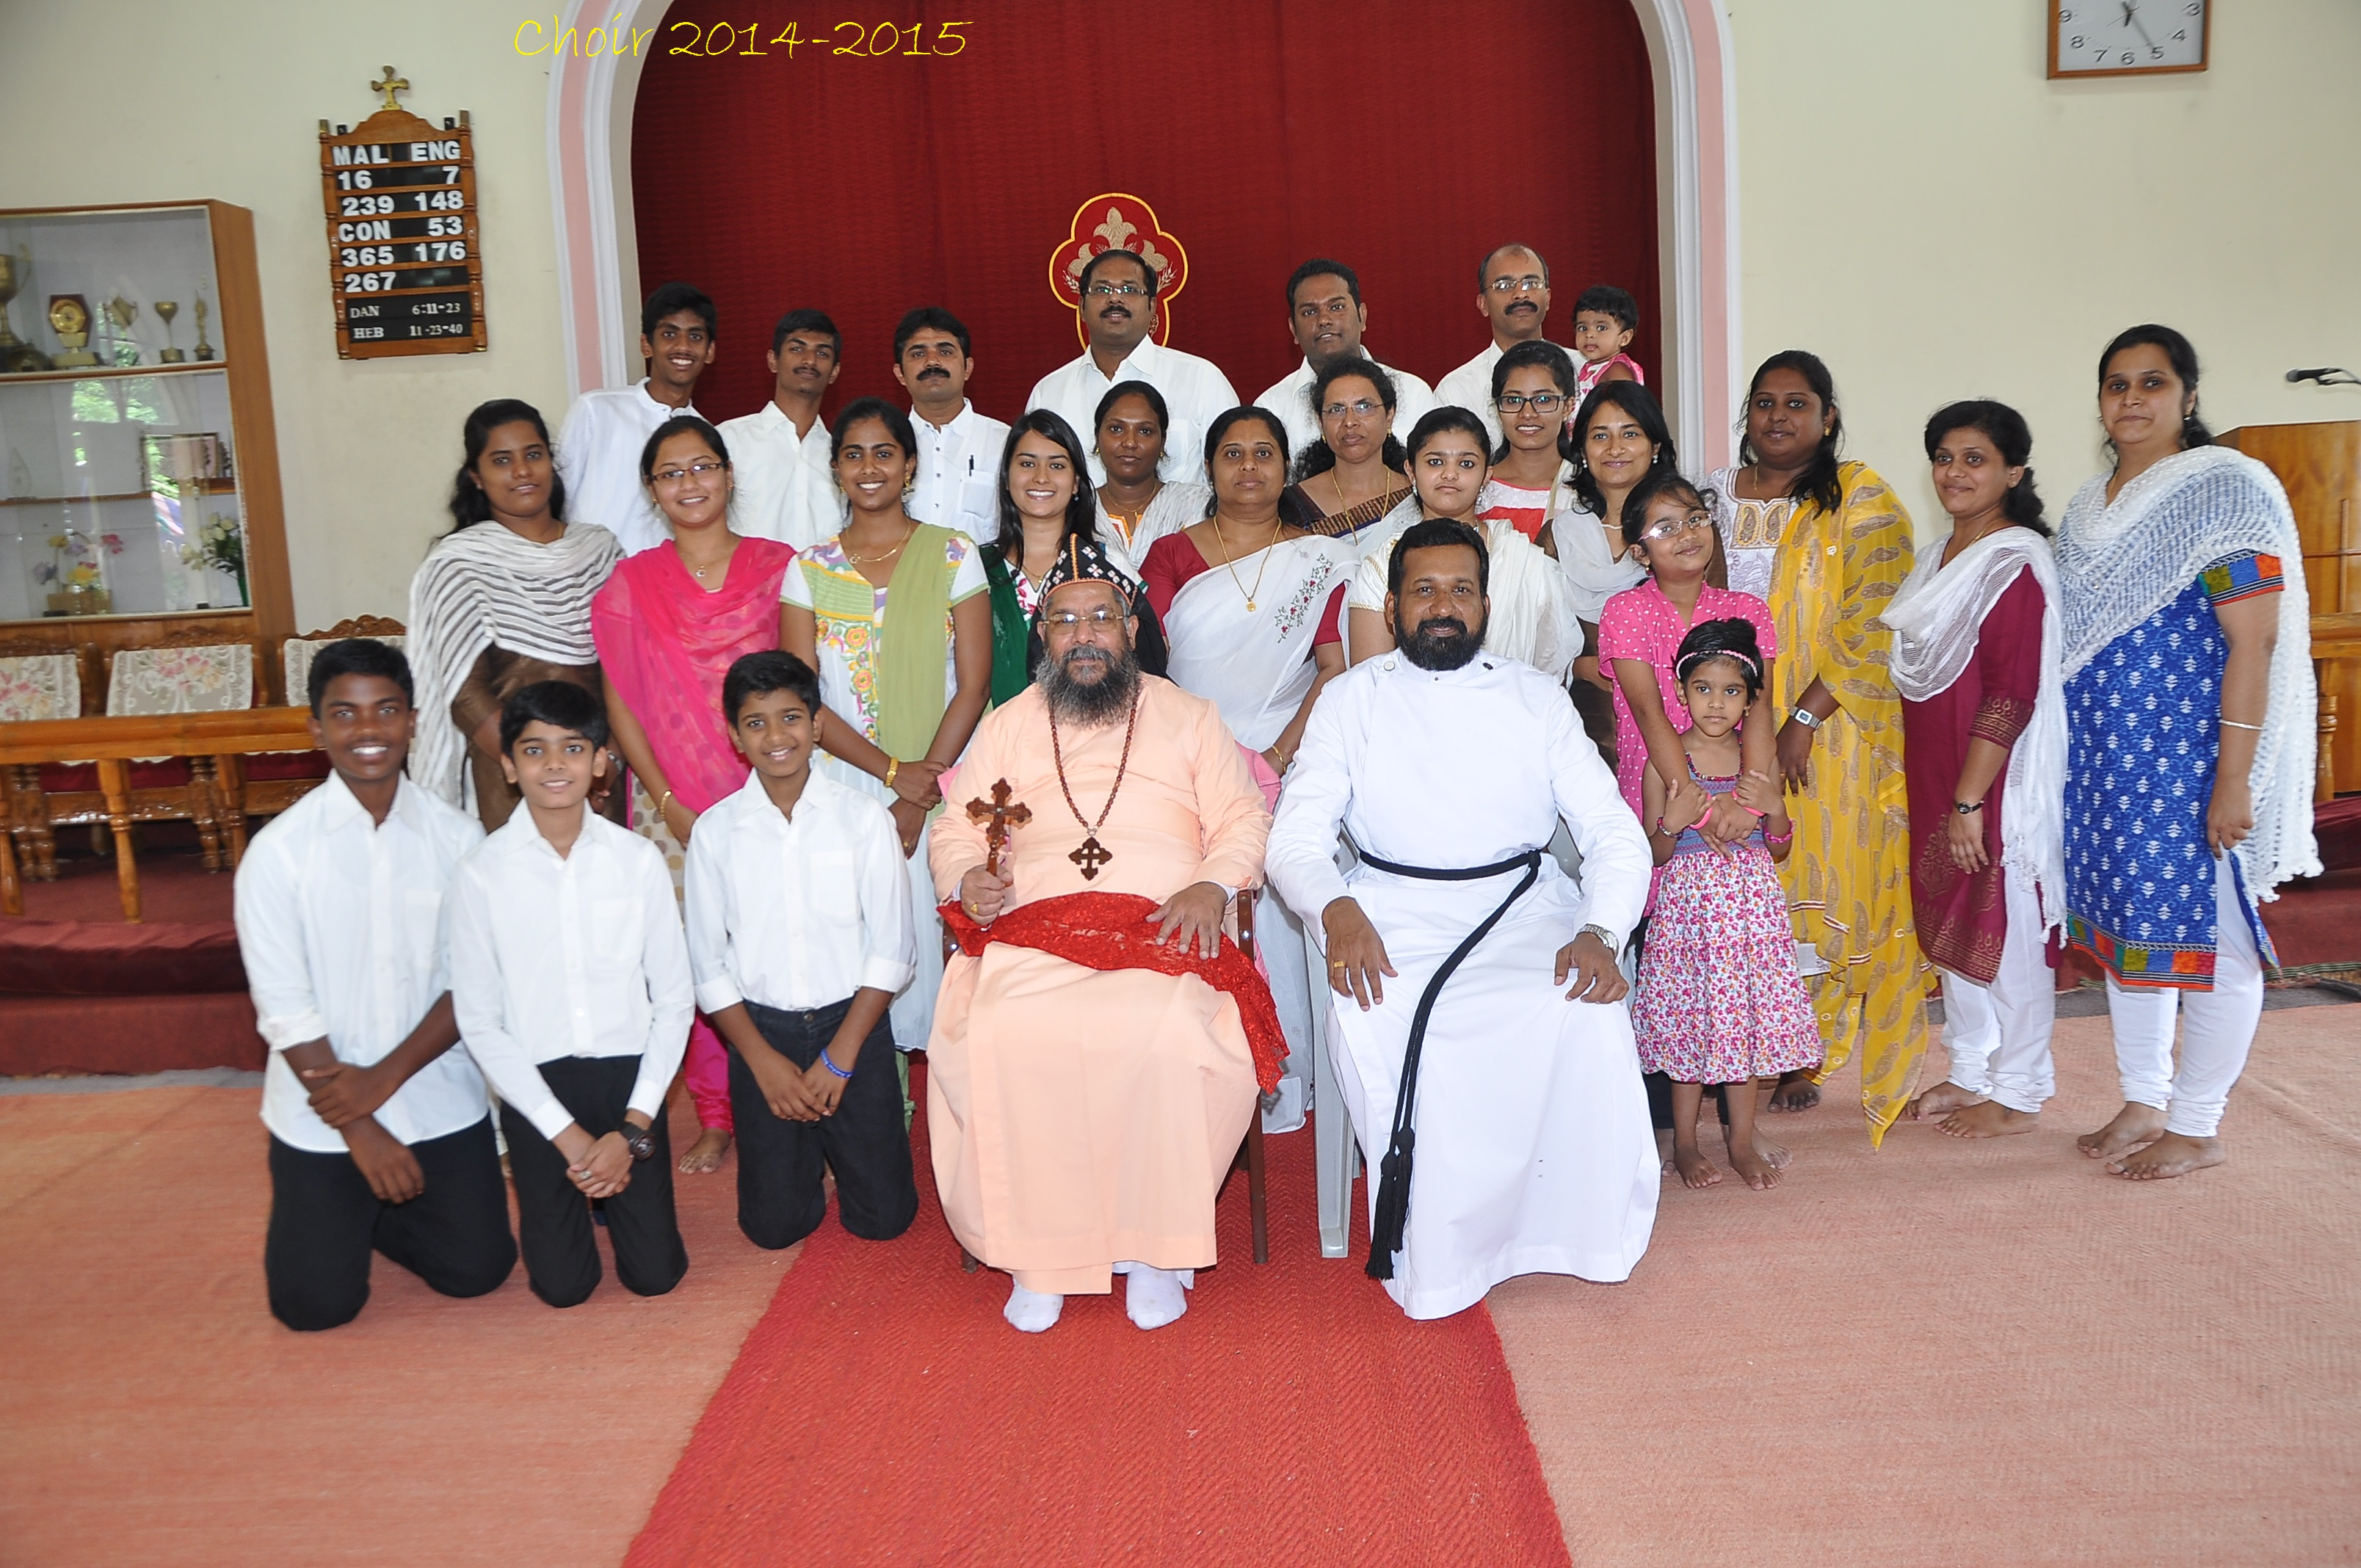 Thirumeni with Church Choir 2015